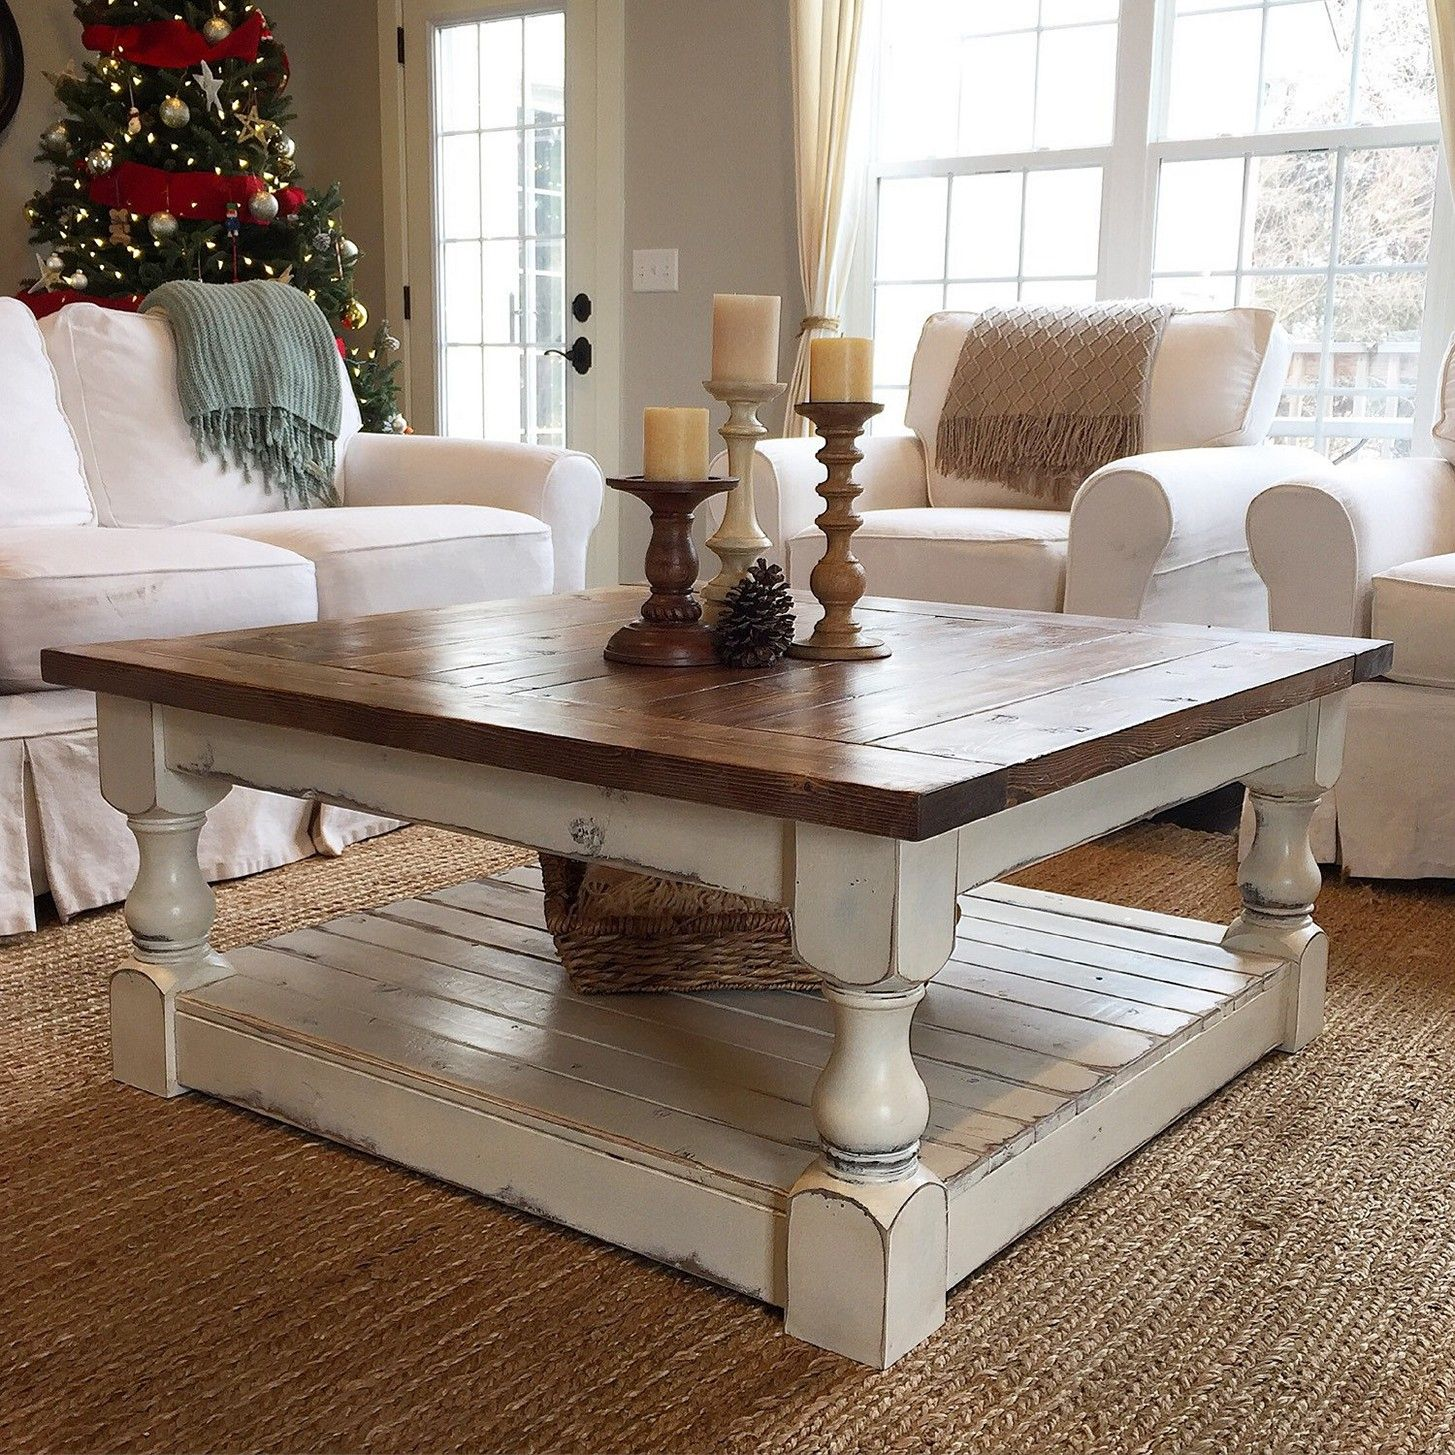 This Farm Style Wood Table Wood Match The Colors And Style Perfectly Coffee Table Farmhouse Coffee Table Farm House Living Room